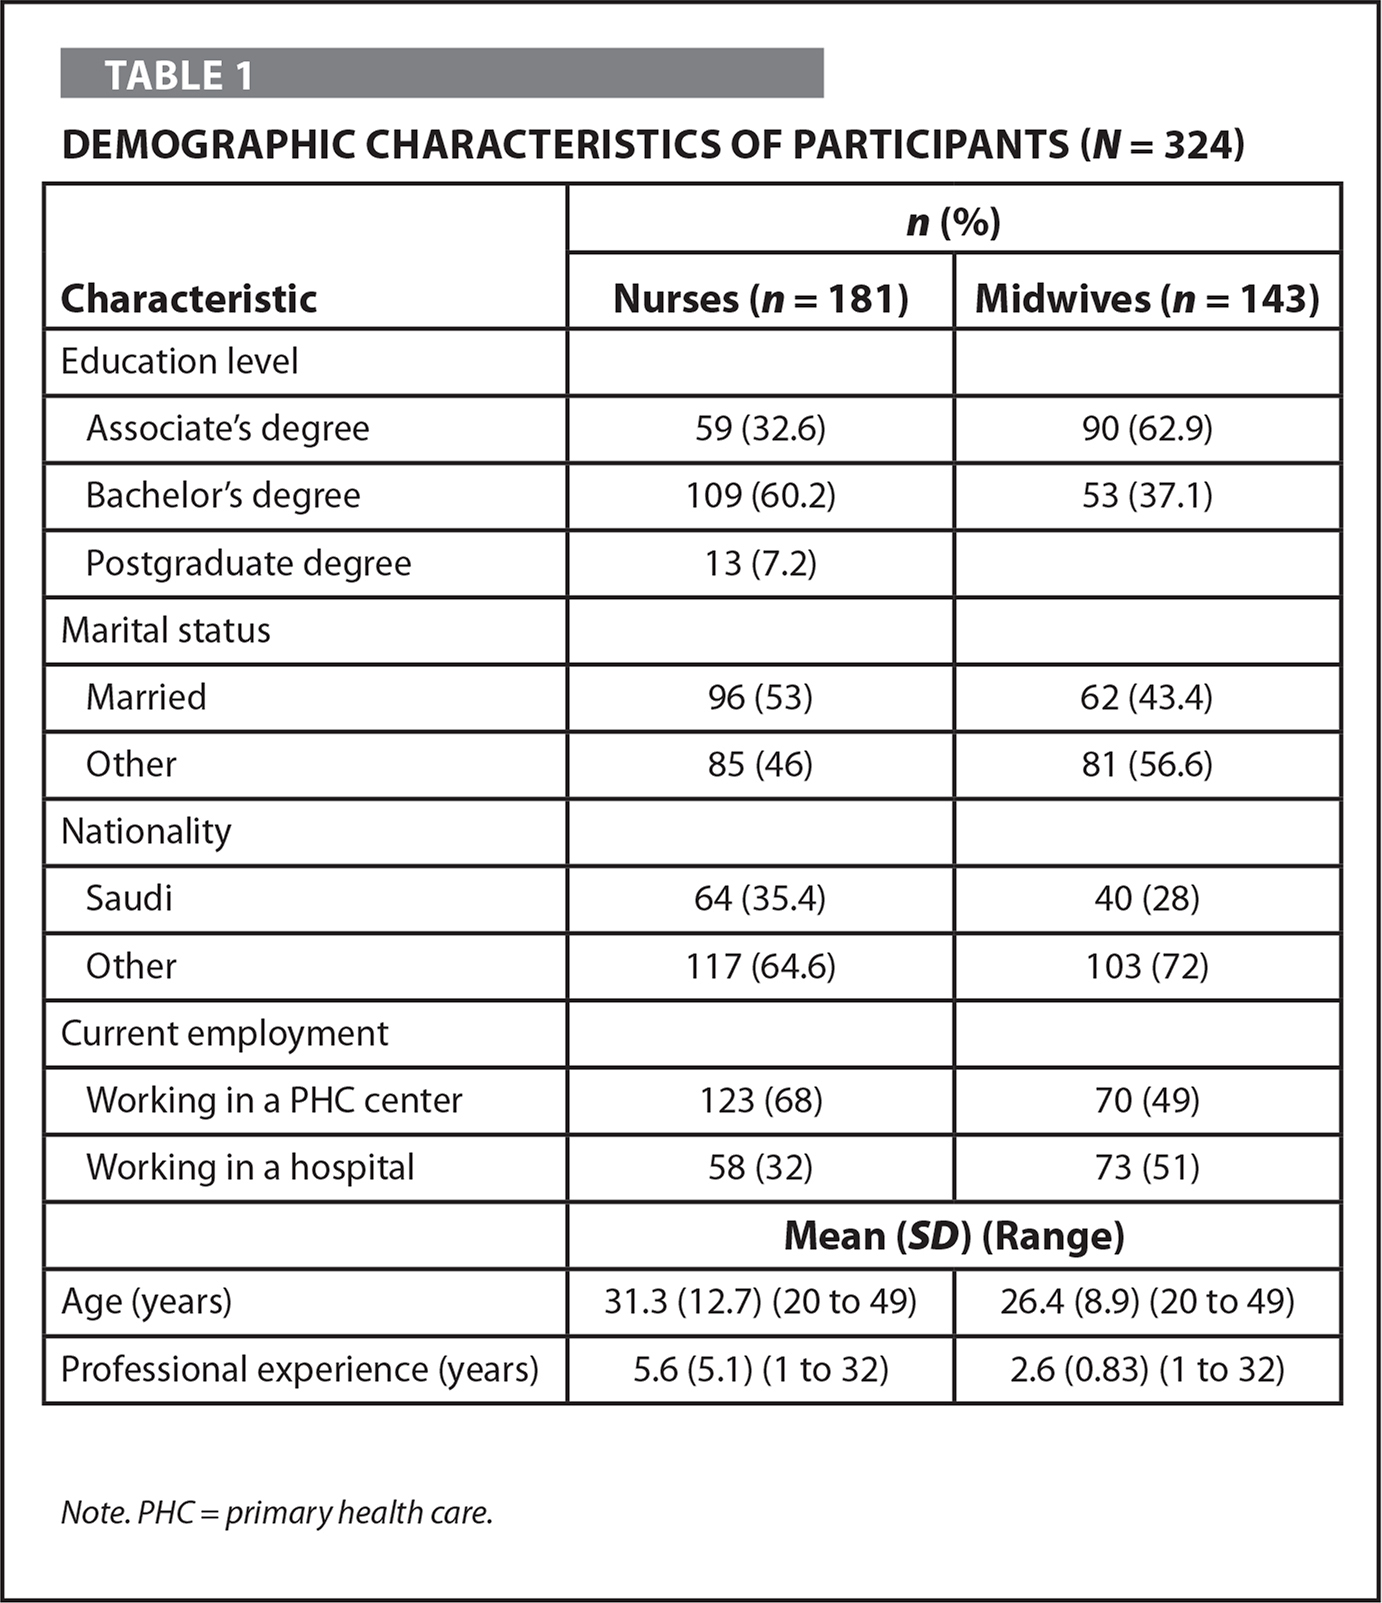 Demographic Characteristics of Participants (N = 324)